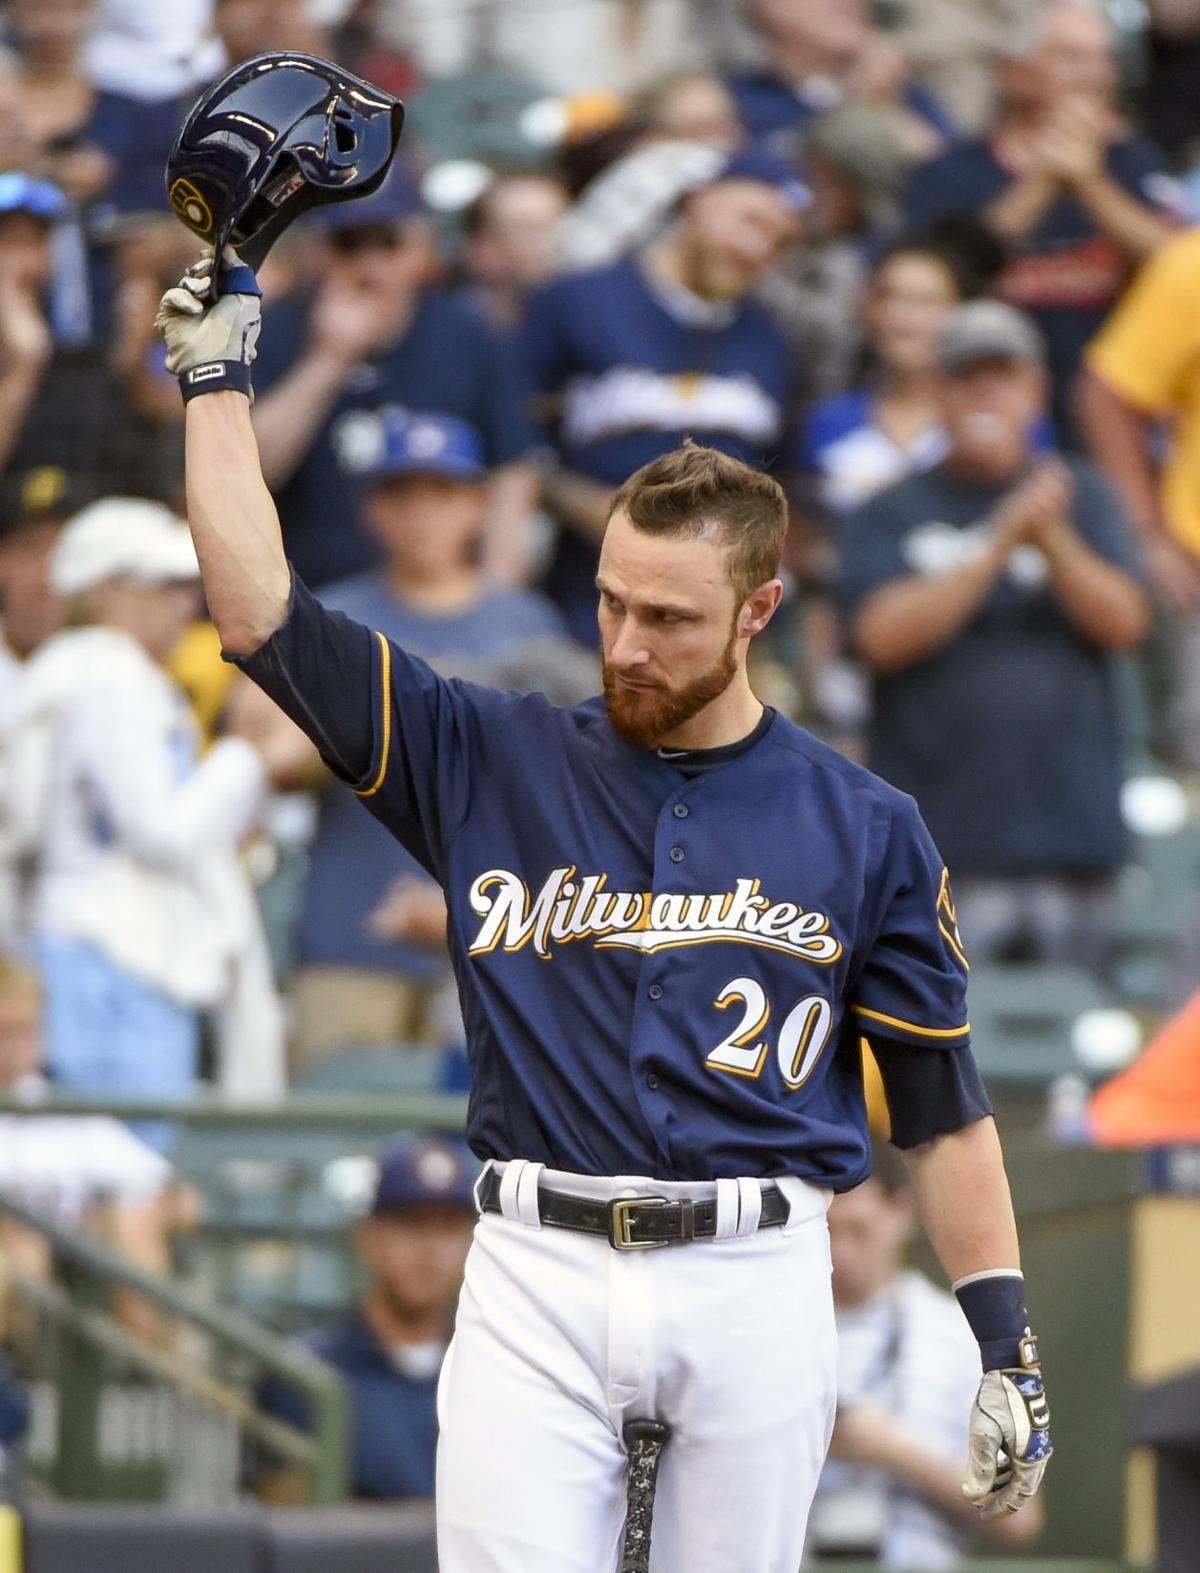 Milwaukee Brewers Bedroom In A Box Major League Baseball: Brewers: Jonathan Lucroy Says Rangers Were Team He Wanted